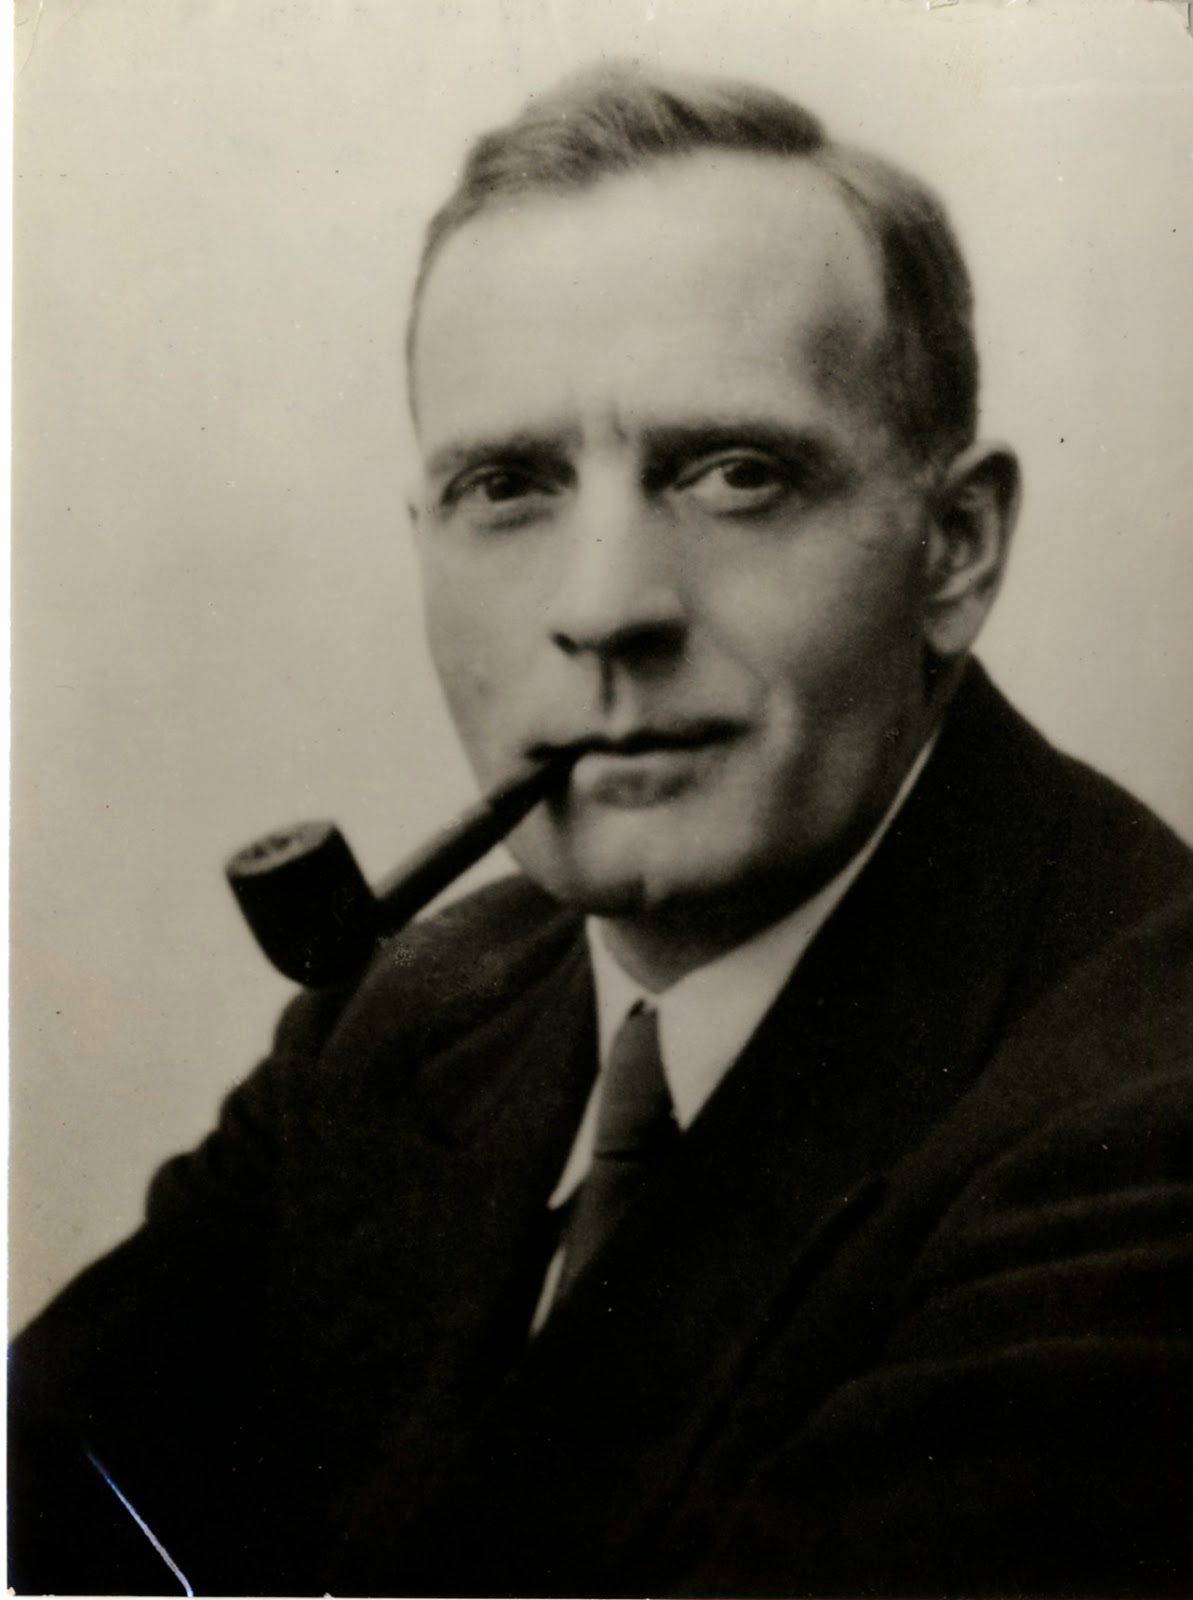 Photograph of Edwin Powell Hubble smoking a pipe